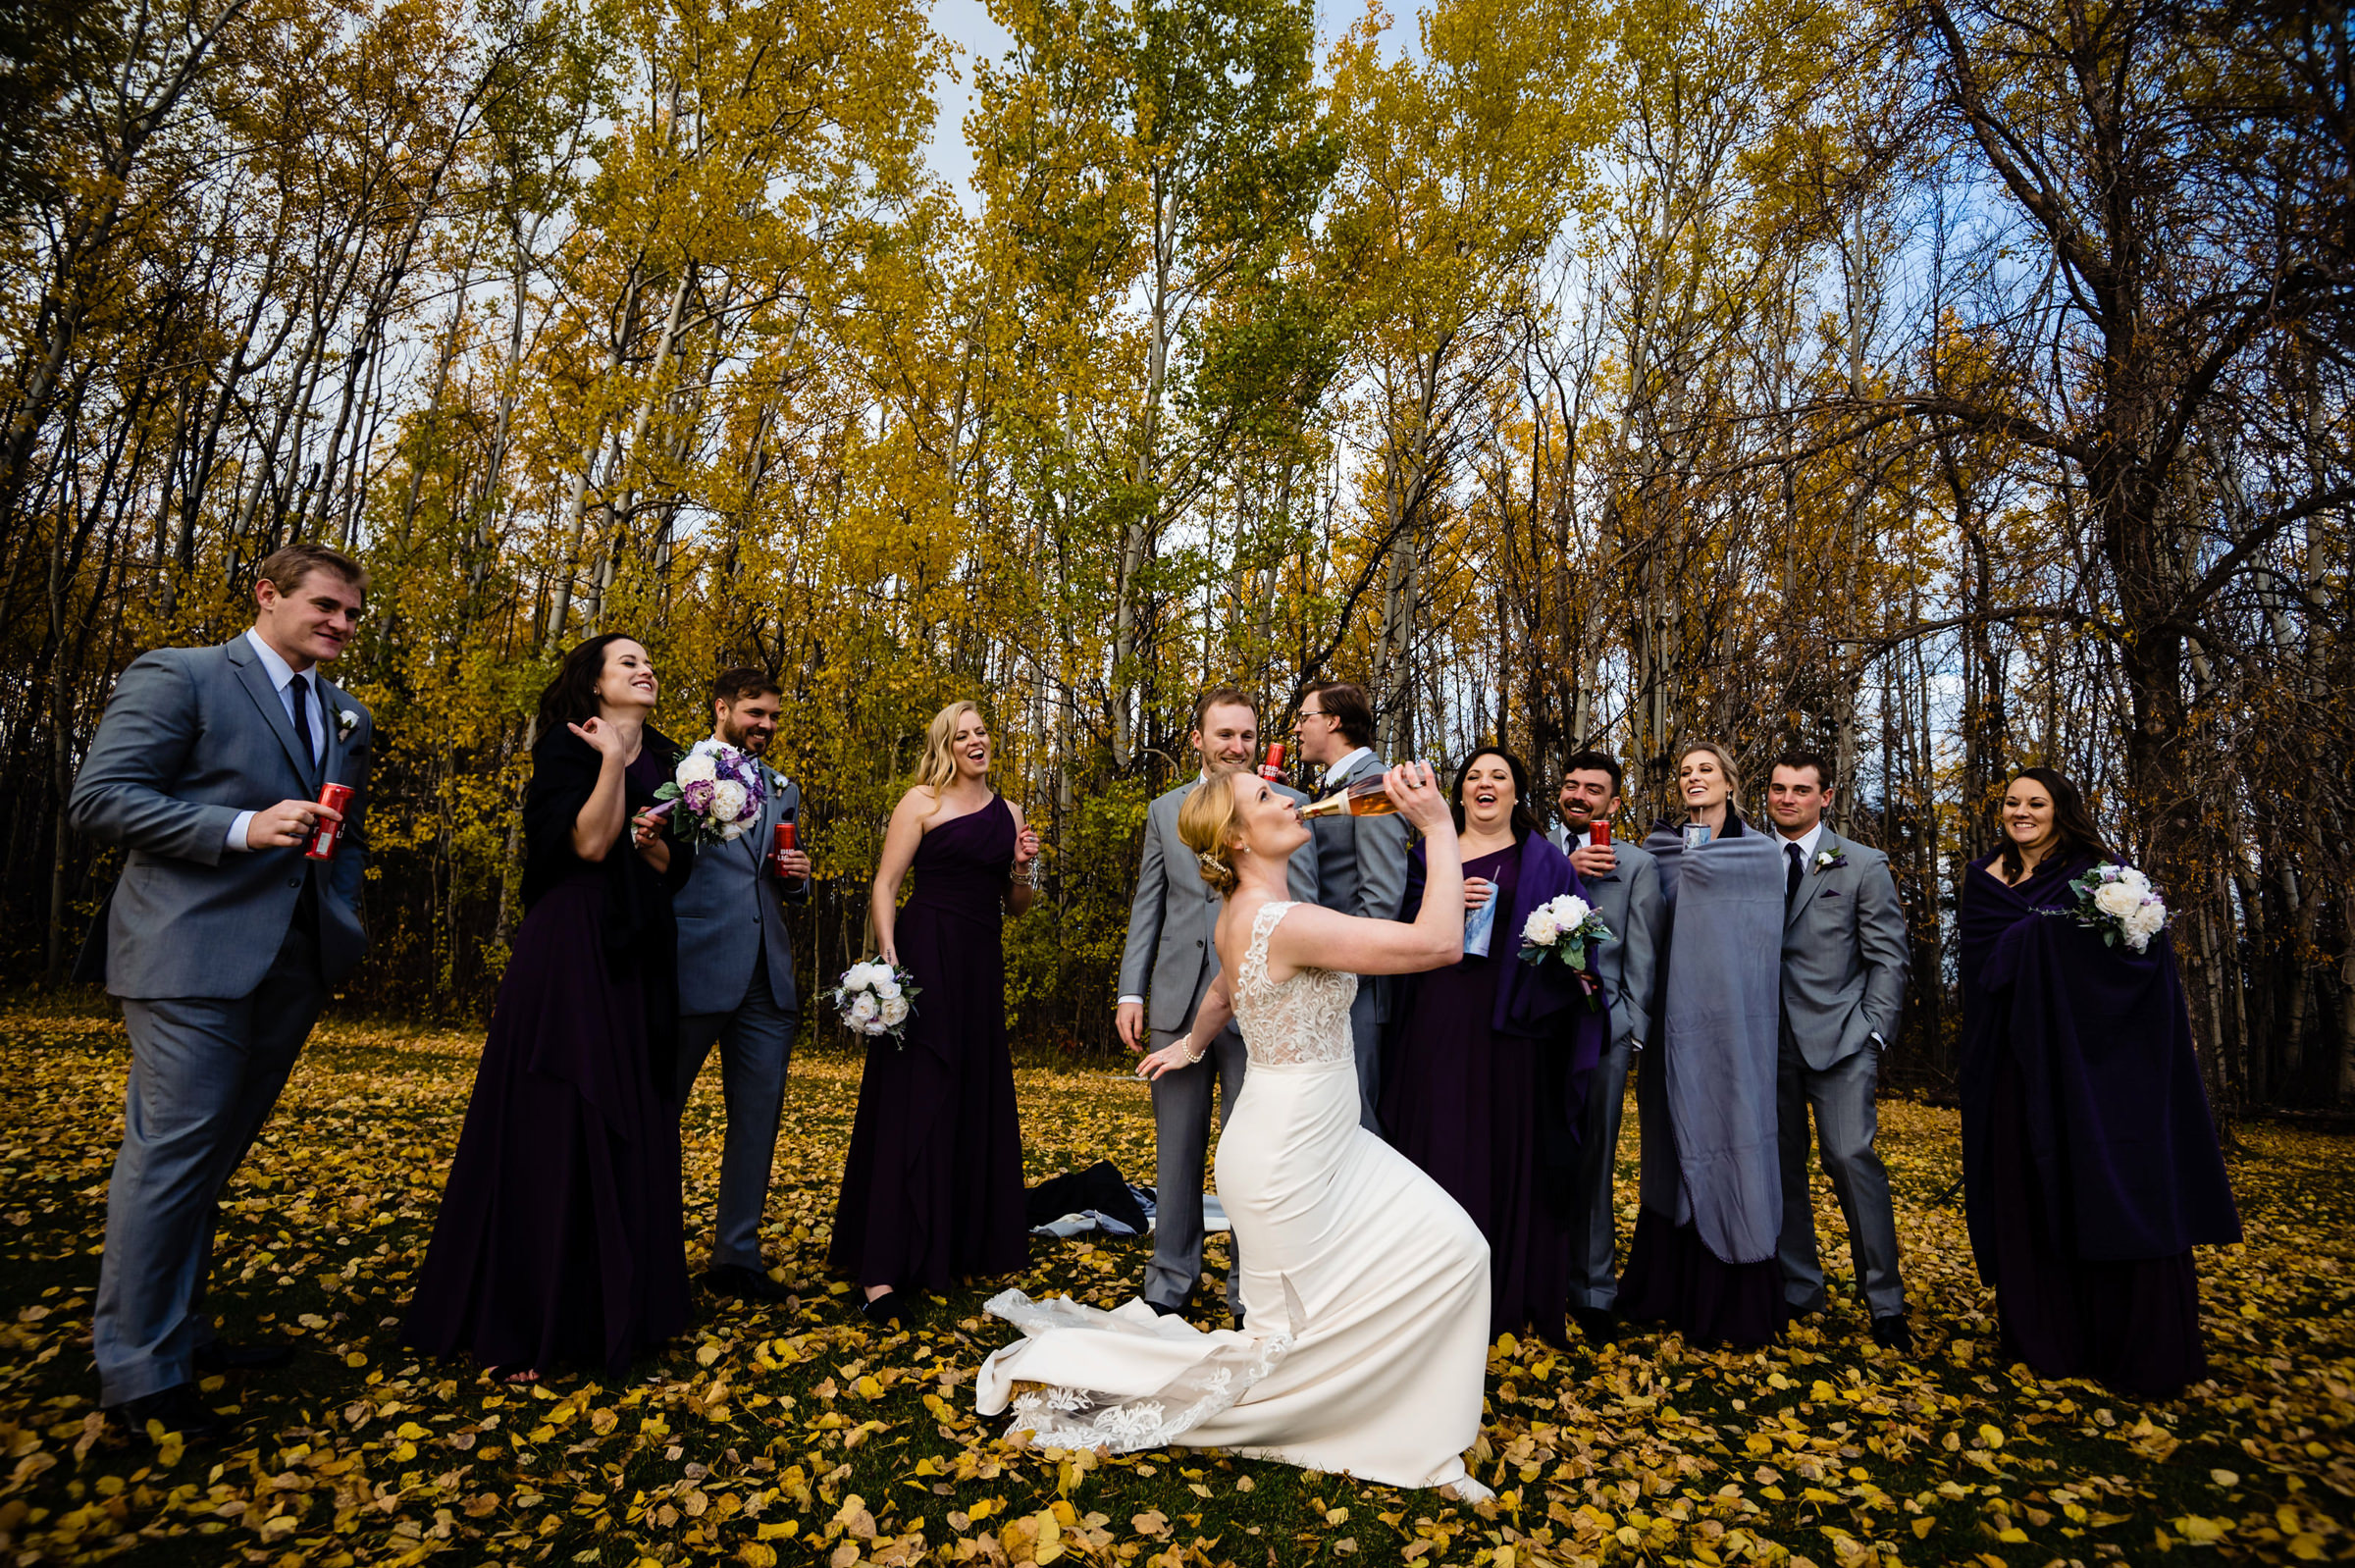 kneeing-bride-drinking-from-a-bottle-with-wedding-party-outdoors-moore-photography